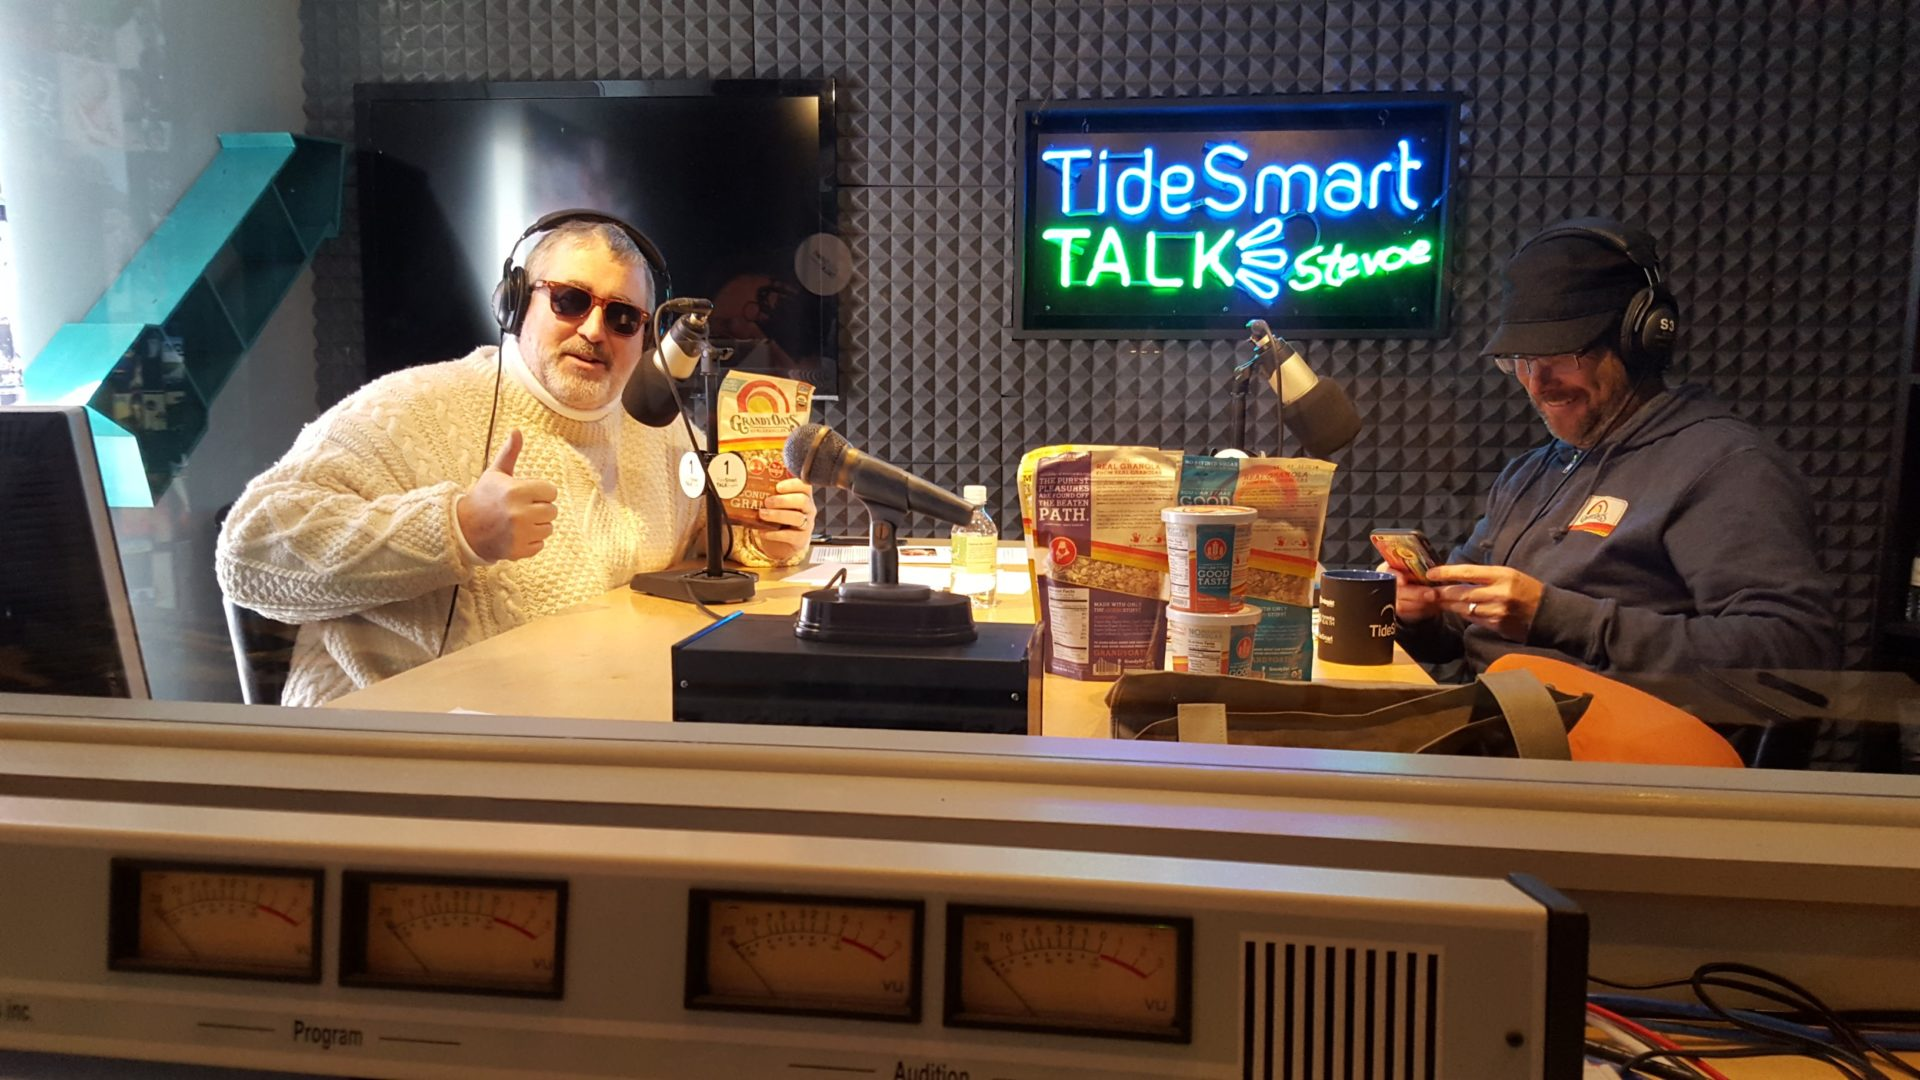 Host of TideSmart Talk with Stevoe, Steve Woods, welcomed GrandyOats Chief Granola Officer, Aaron Anker (at right).